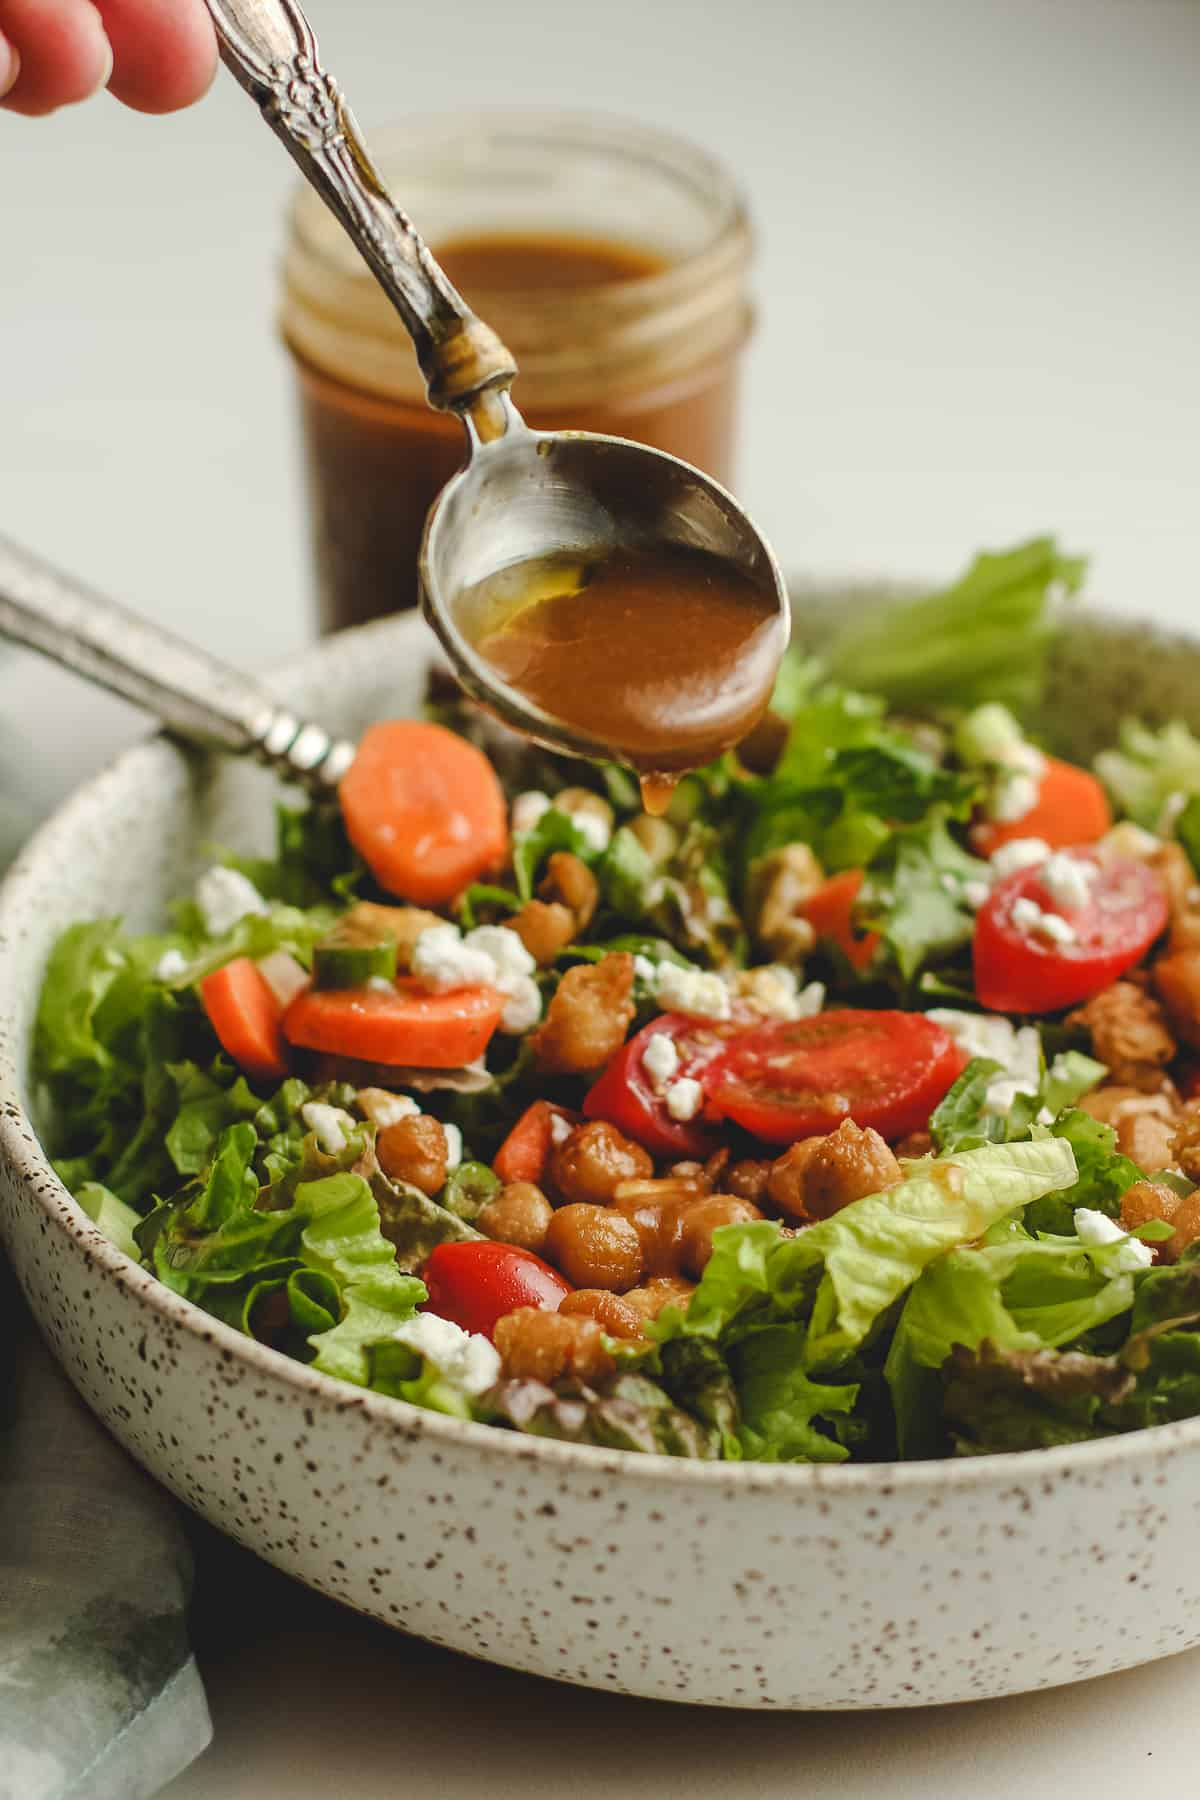 A hand drizzling some balsamic dressing on a green salad.